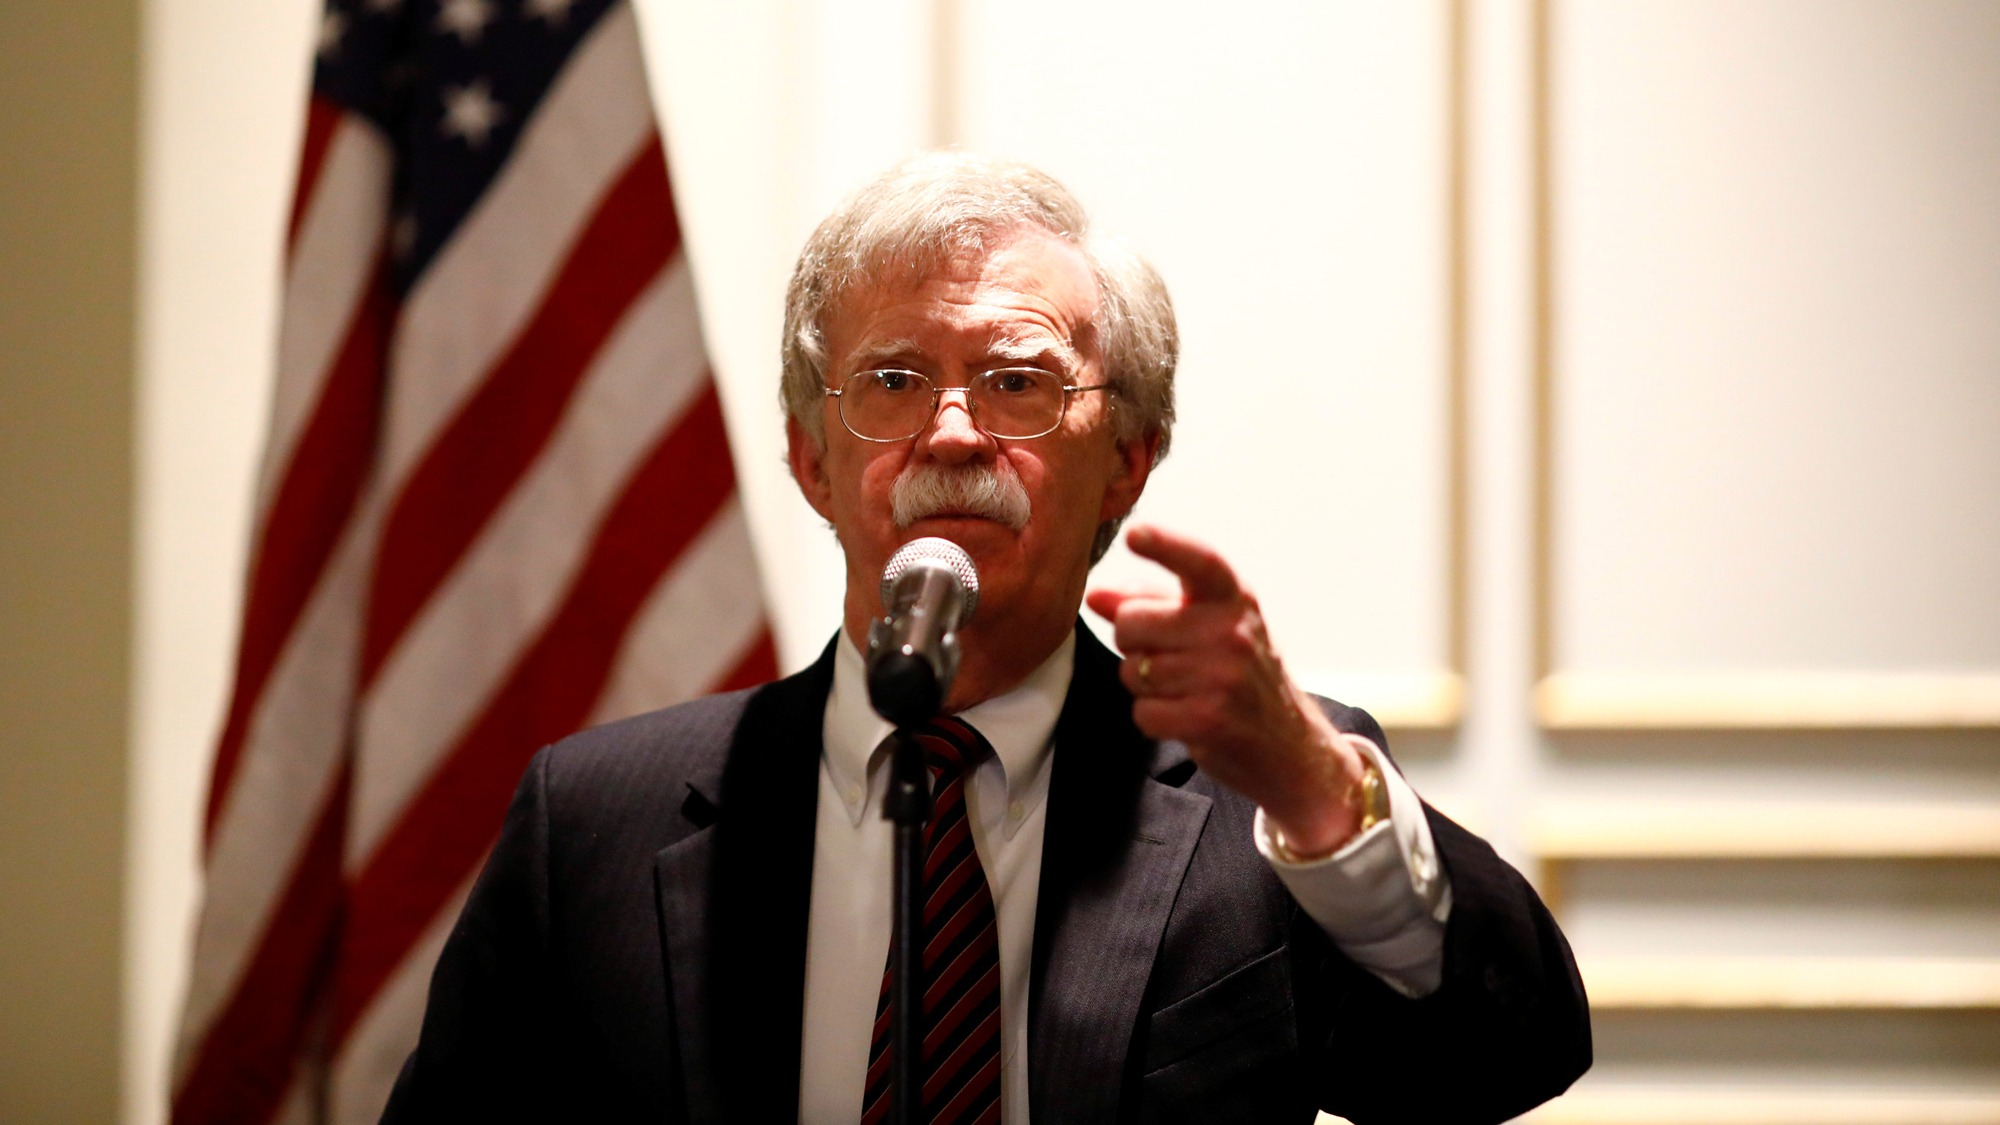 National Security Adviser John Bolton is shown at a microphone with the US flag behind him, speaking at a forum in Washington, DC, 2018.